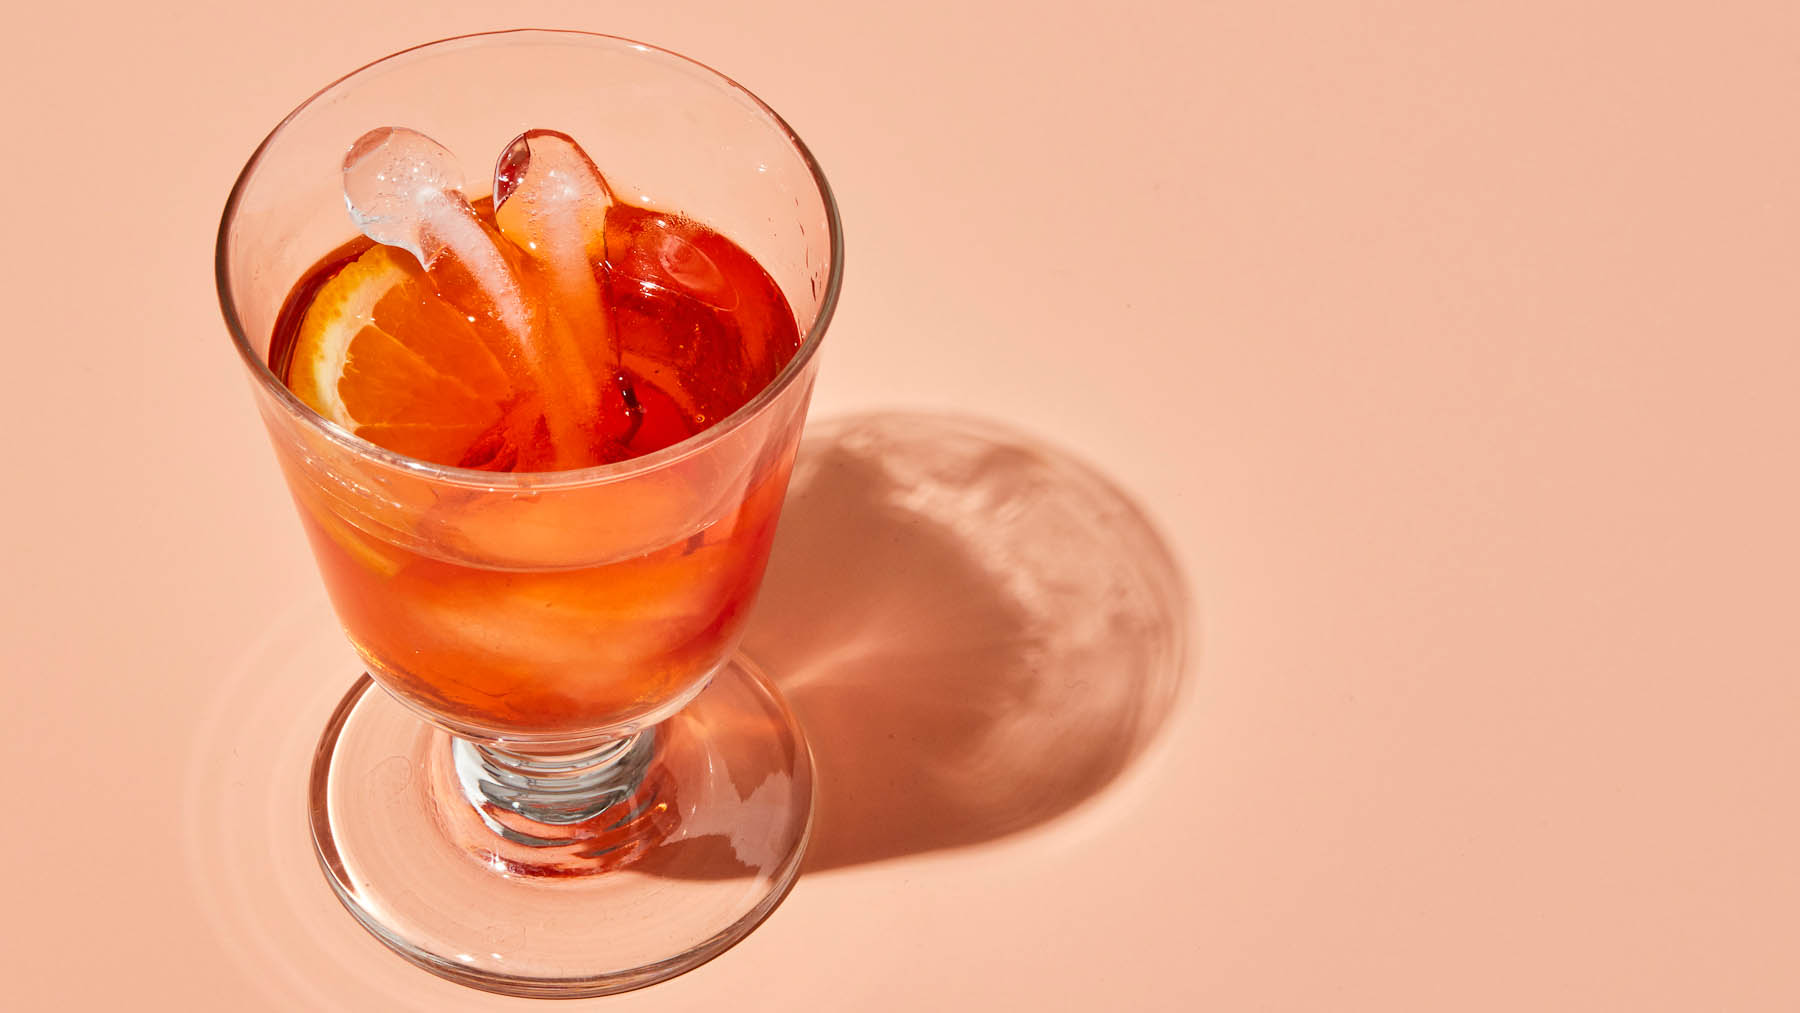 Know Your Booze: The History Behind These 3 Classic Cocktails